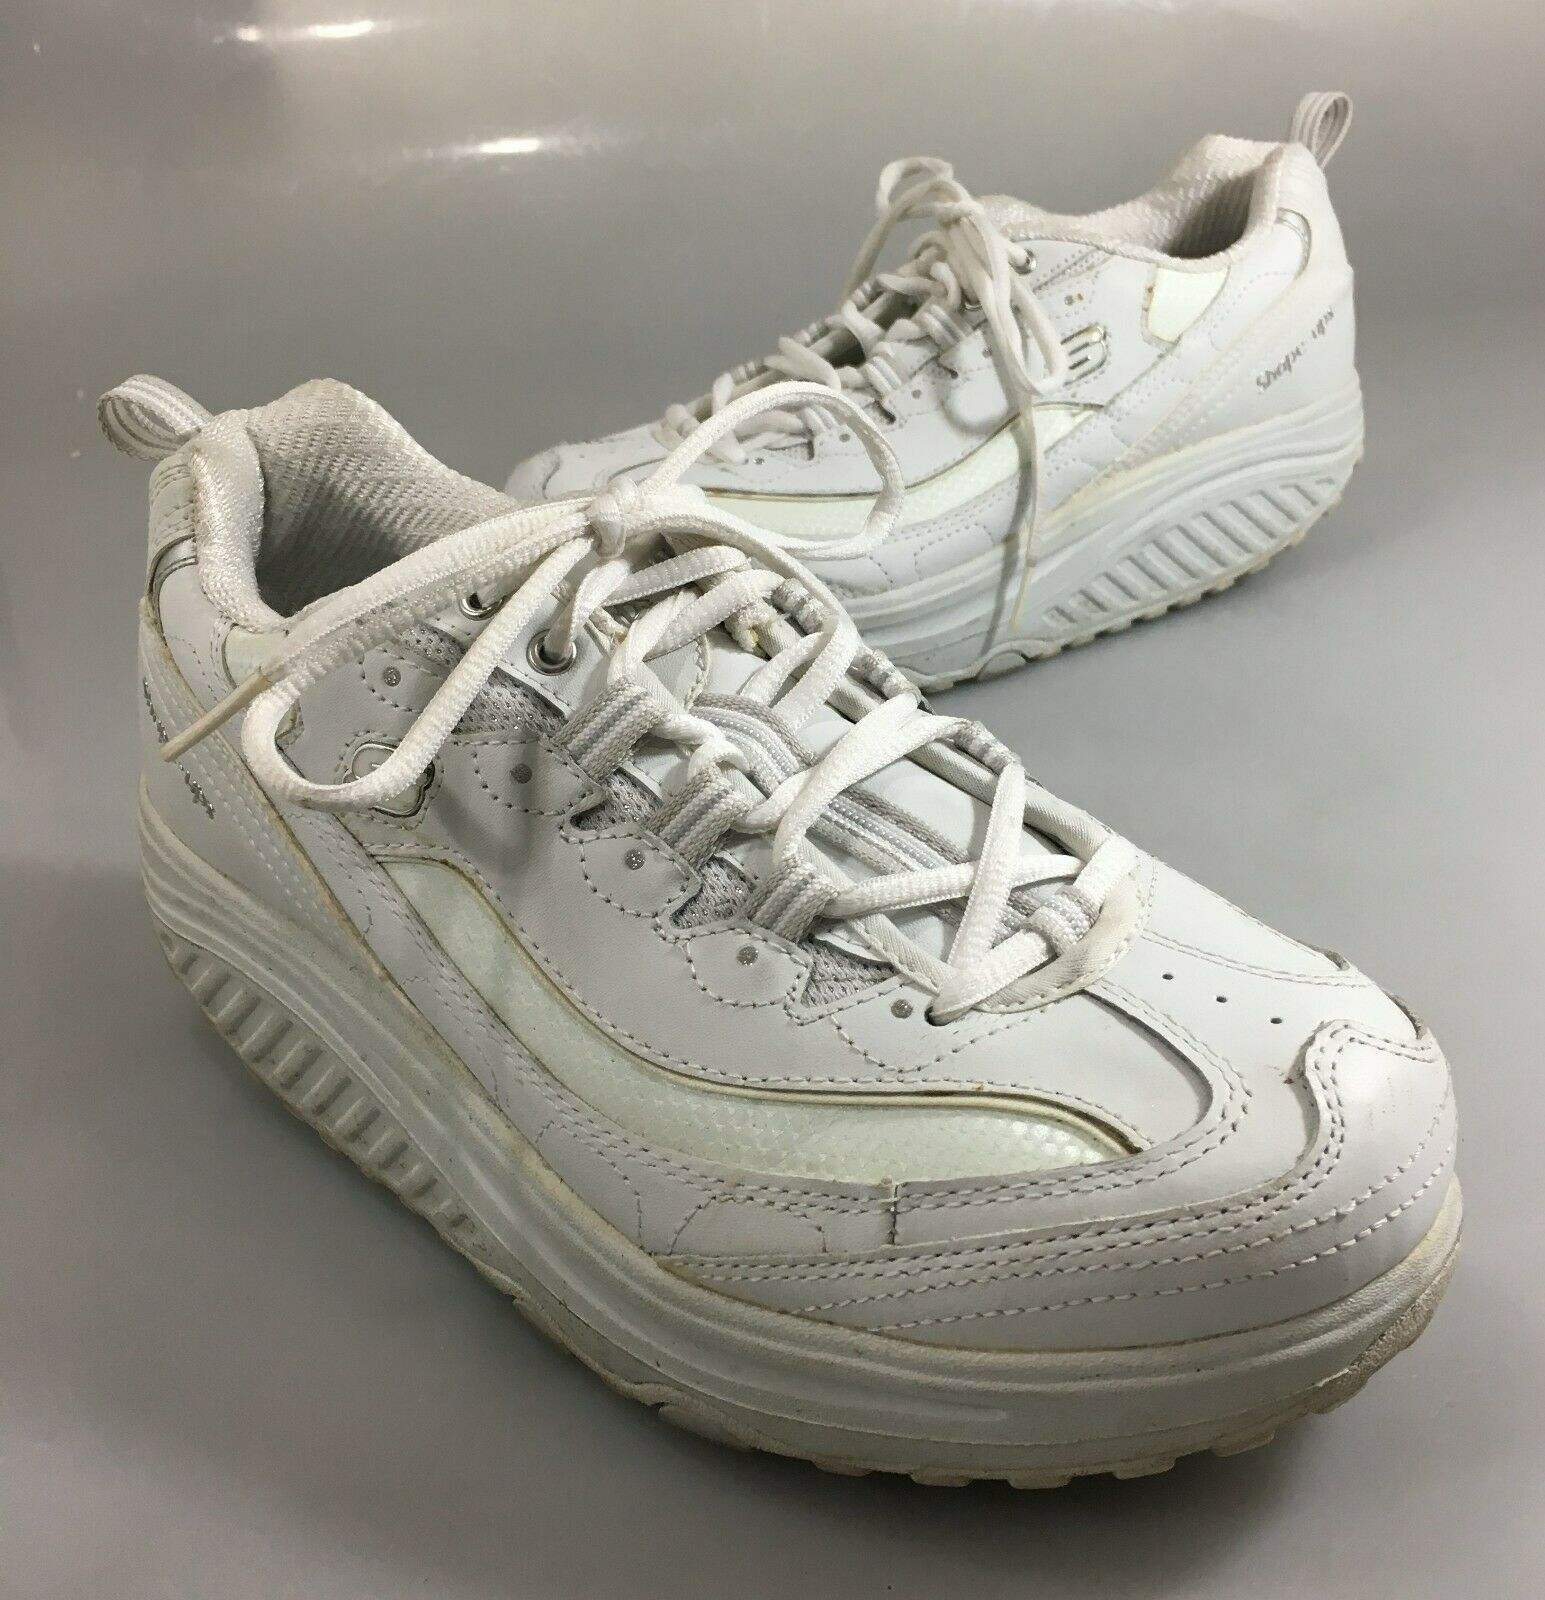 Skechers Womens 9.5 Shape-Ups White Leather Toning Gym Shoes Sneakers Kicks